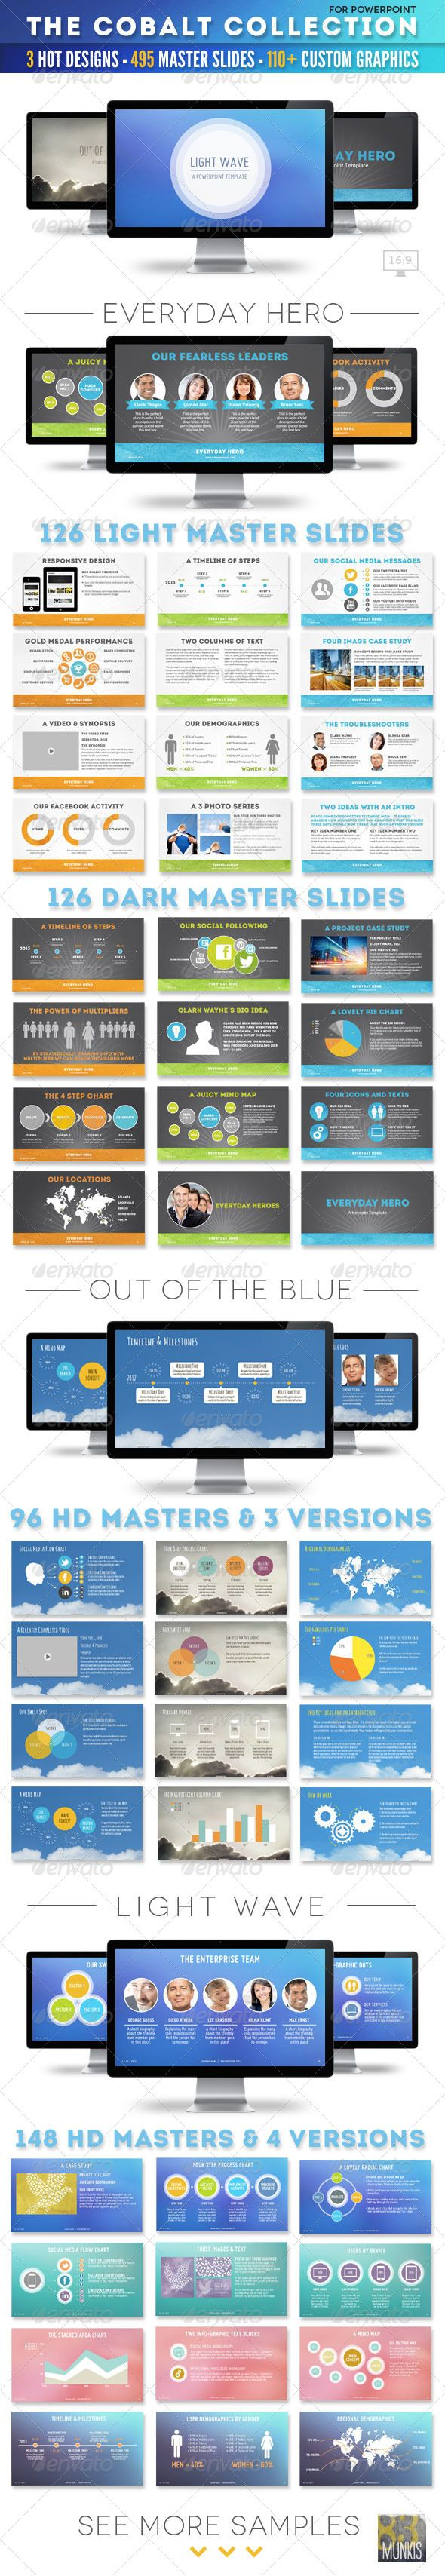 The Cobalt Collection of Powerpoint Templates  #GraphicRiver         The Cobalt Collection of Powerpoint Templates Showcase your unique style with this boldly graphic bundle containing three popular designs of stunning and easily customizable Powerpoint presentation templates – Out of the Blue, Lightwave & Everyday Hero – from 83MUNKIS. Great for eBooks, business decks and creative presentations, these professionally designed Powerpoint templates are fully customizable and simple to use…